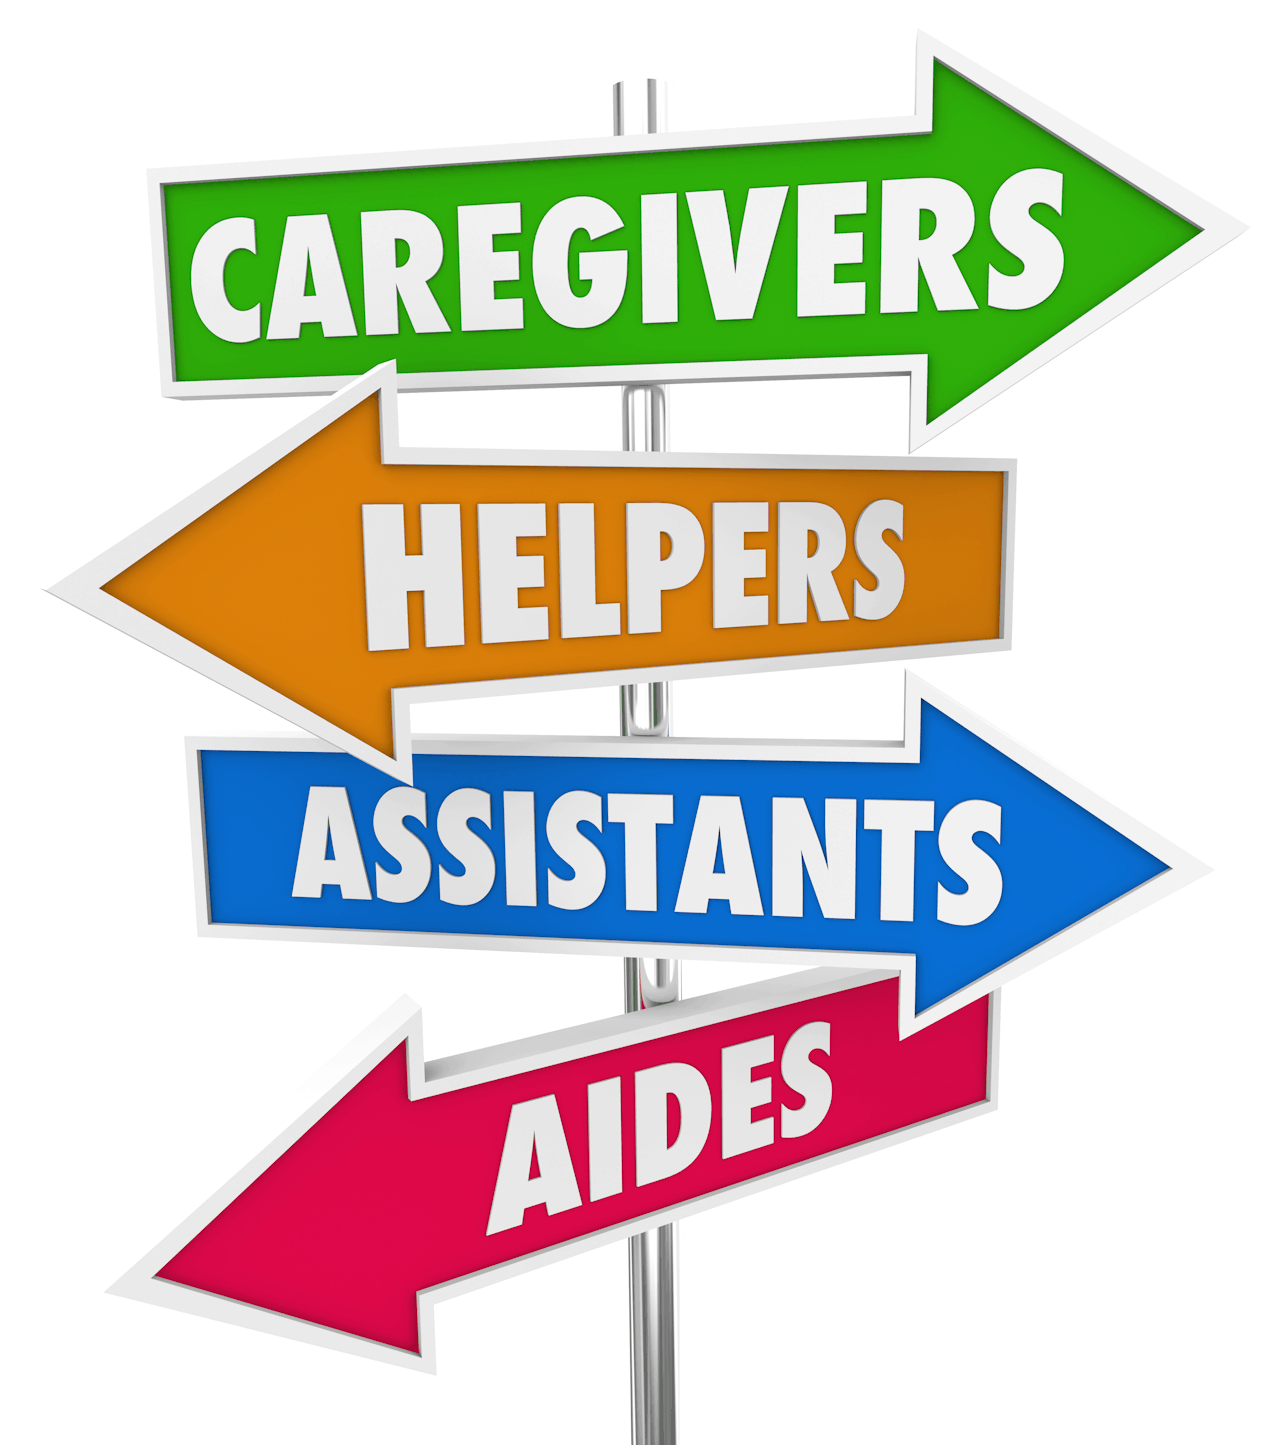 Caregivers Helpers Assistants Aides